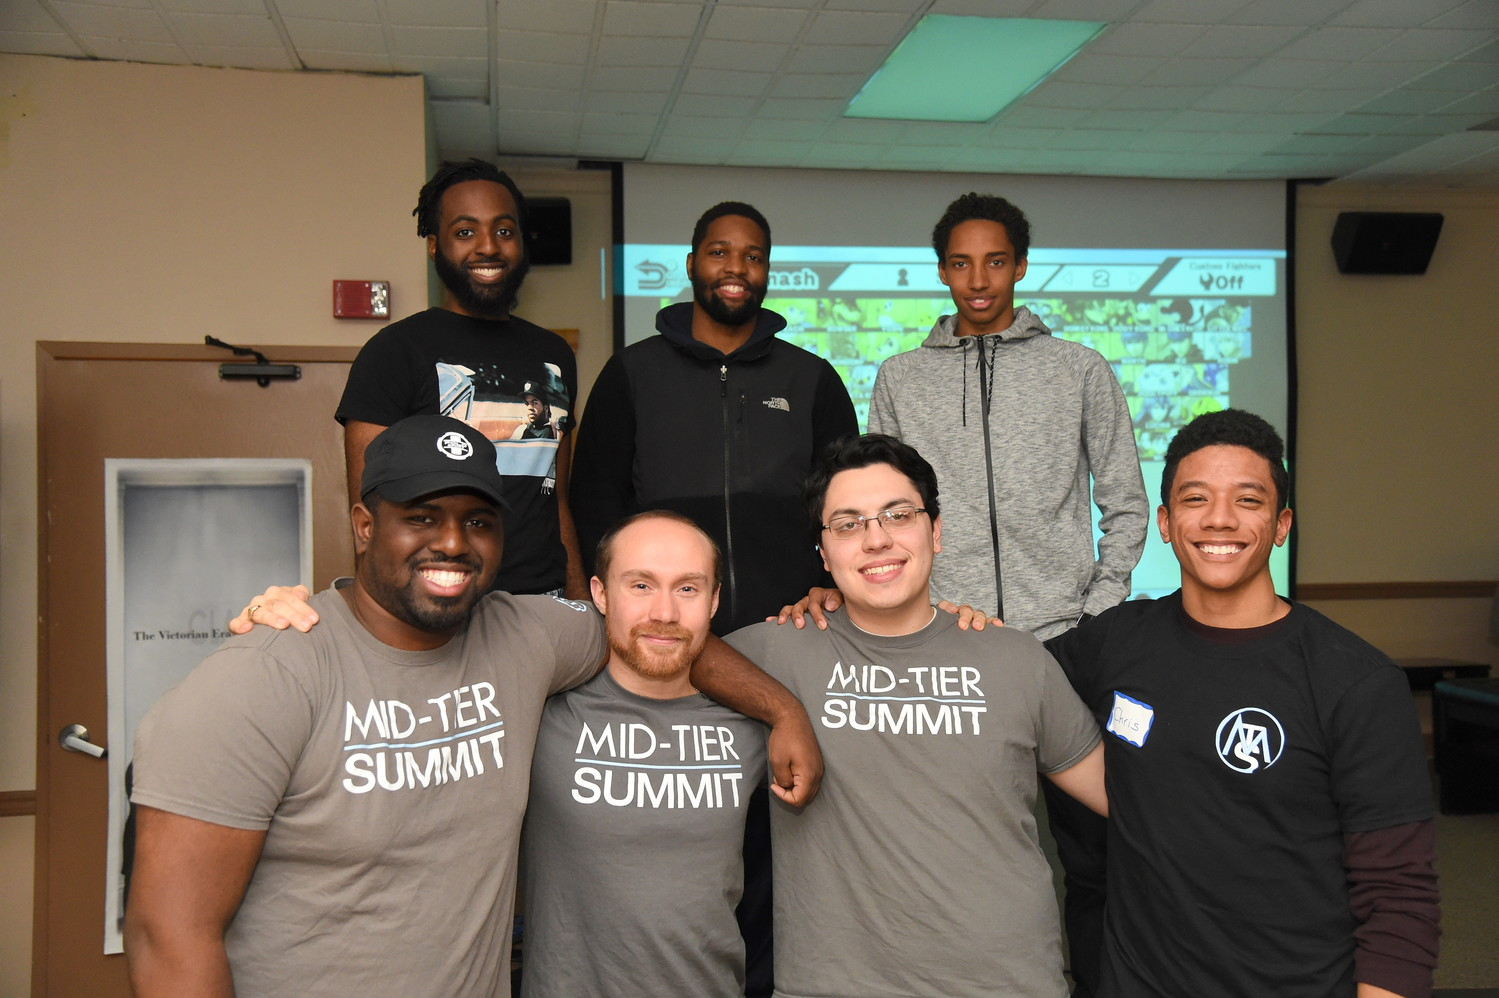 Founders and volunteers of Mid-Tier Summit Gaming held the first ever youth video game tournament at the Freeport memorial library. Pictured from left to right, Nkosi Archibald, Jacky Dugue, Corey Abrahams, Alexander Holcombe, Joe Marchesse-Schmitt, Timothy Moore and Chris Chin.